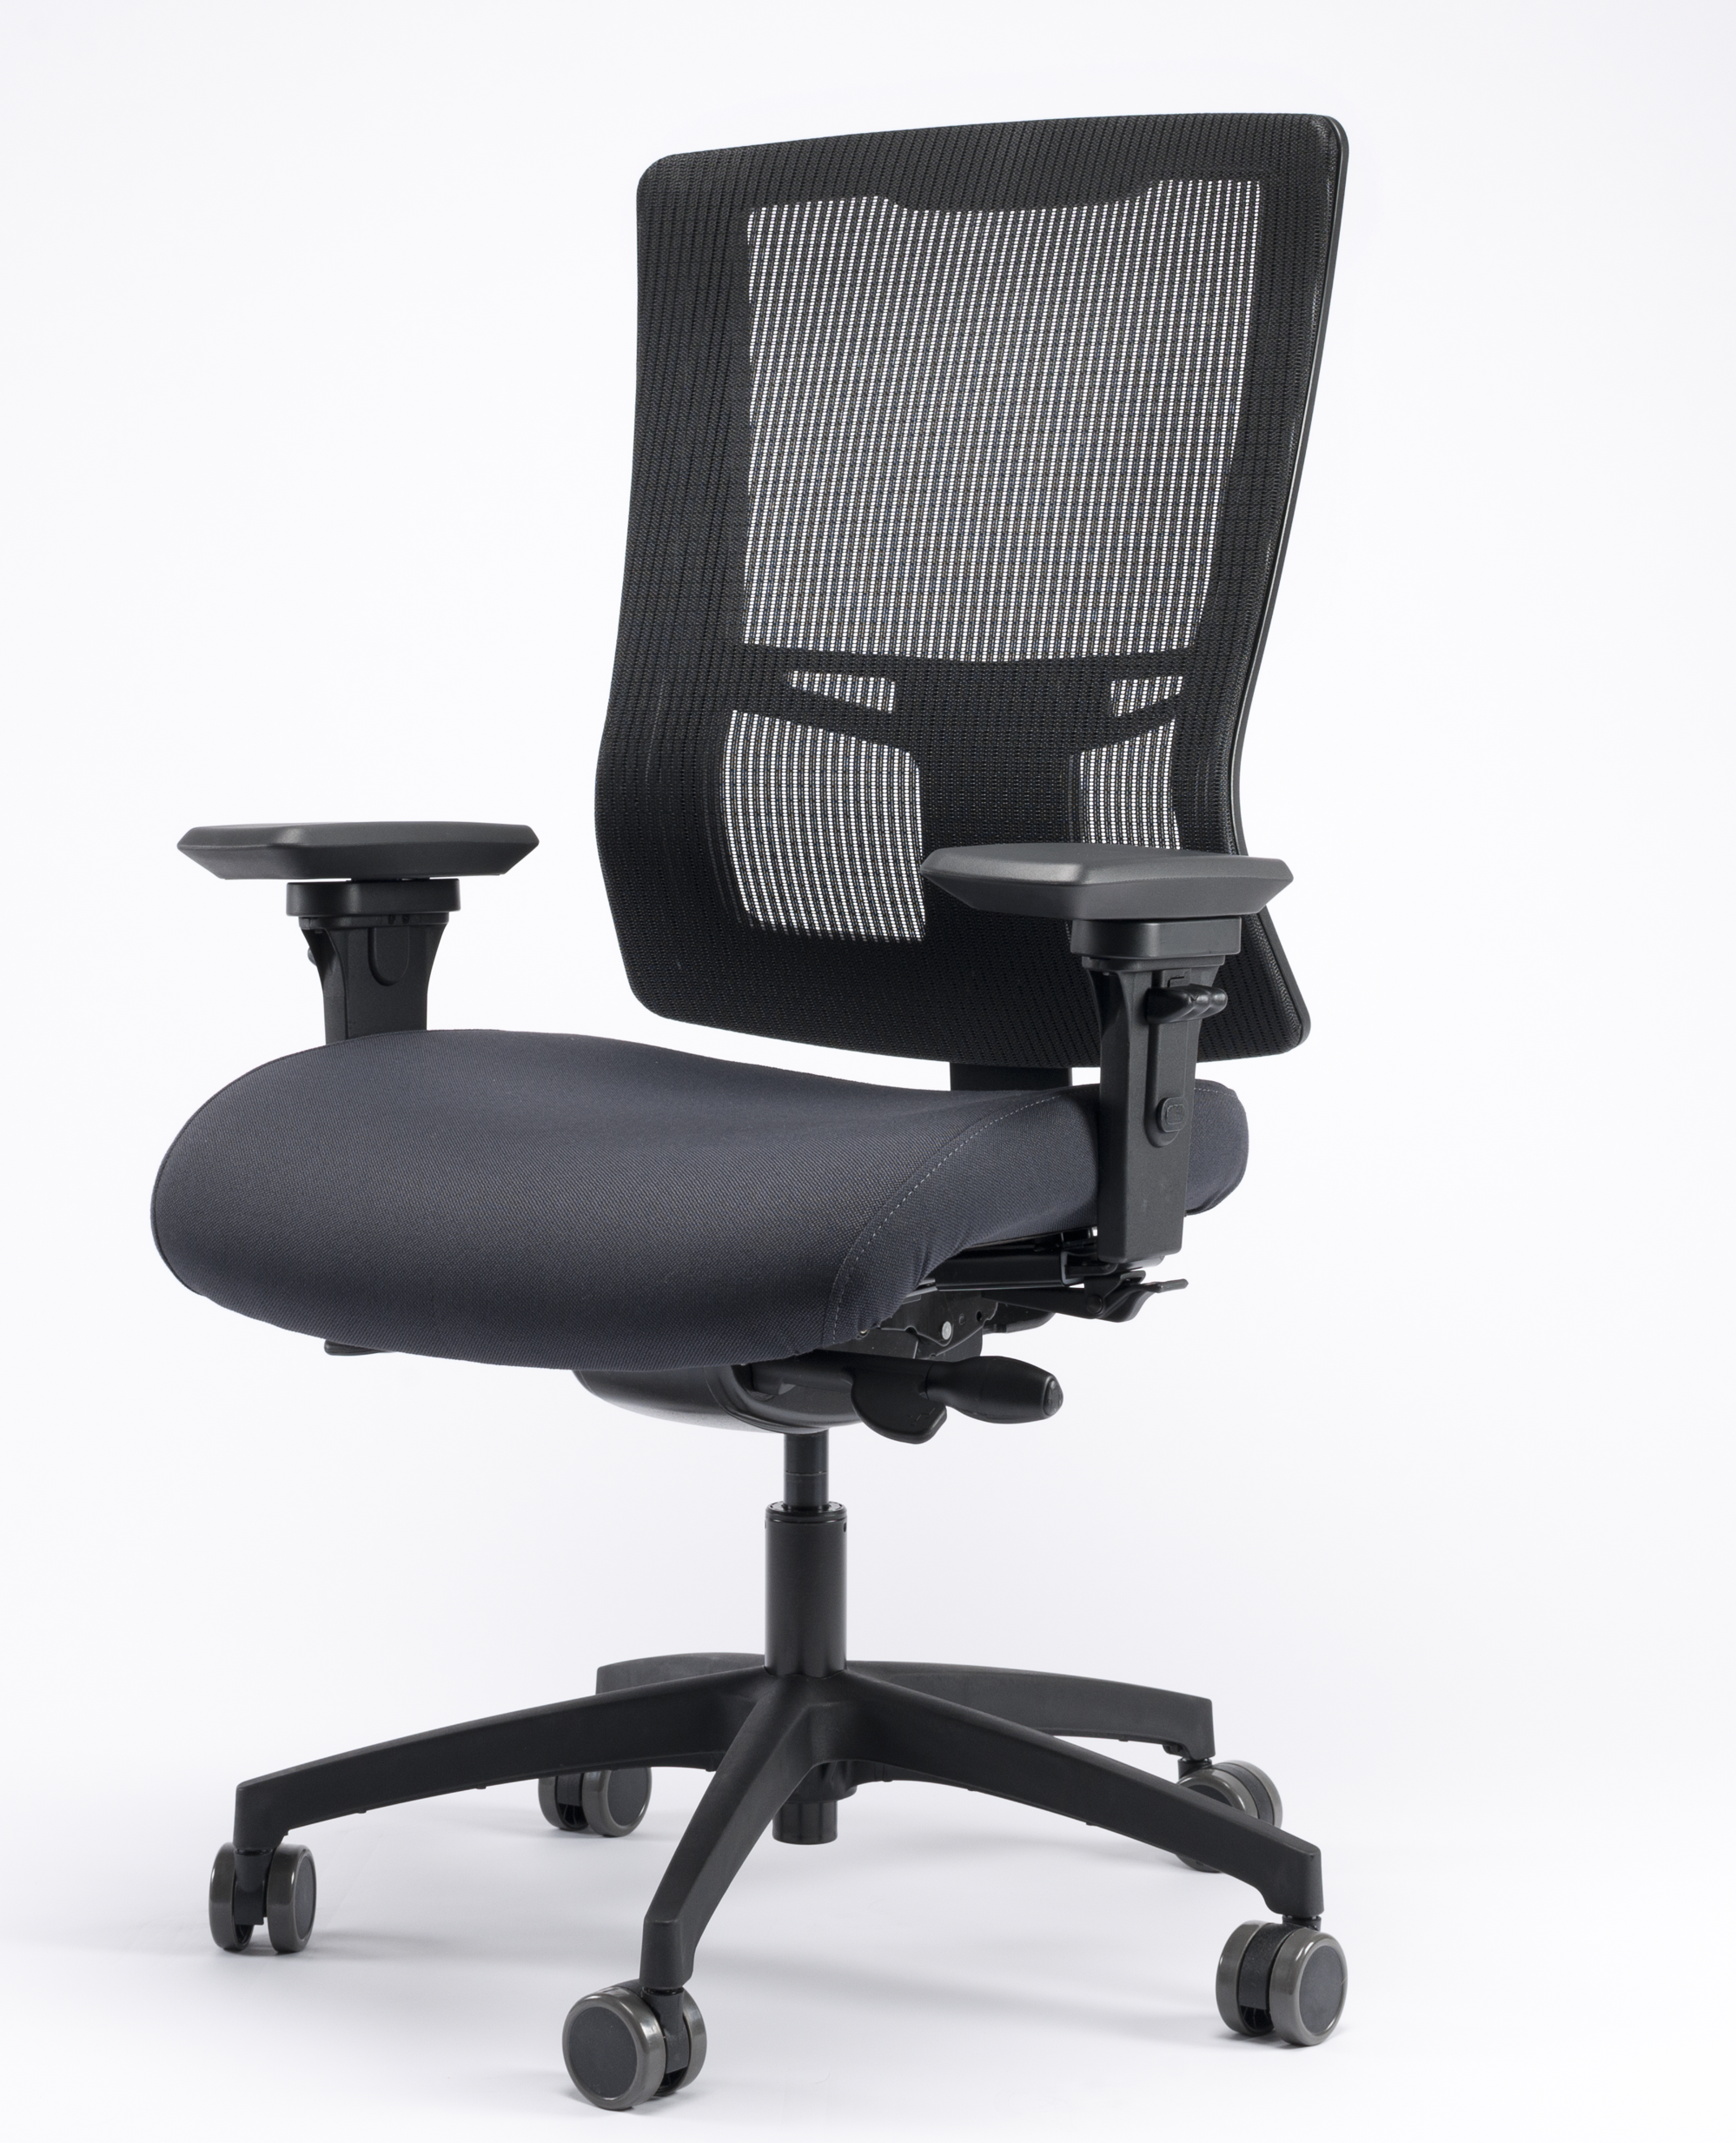 office chair for gaming